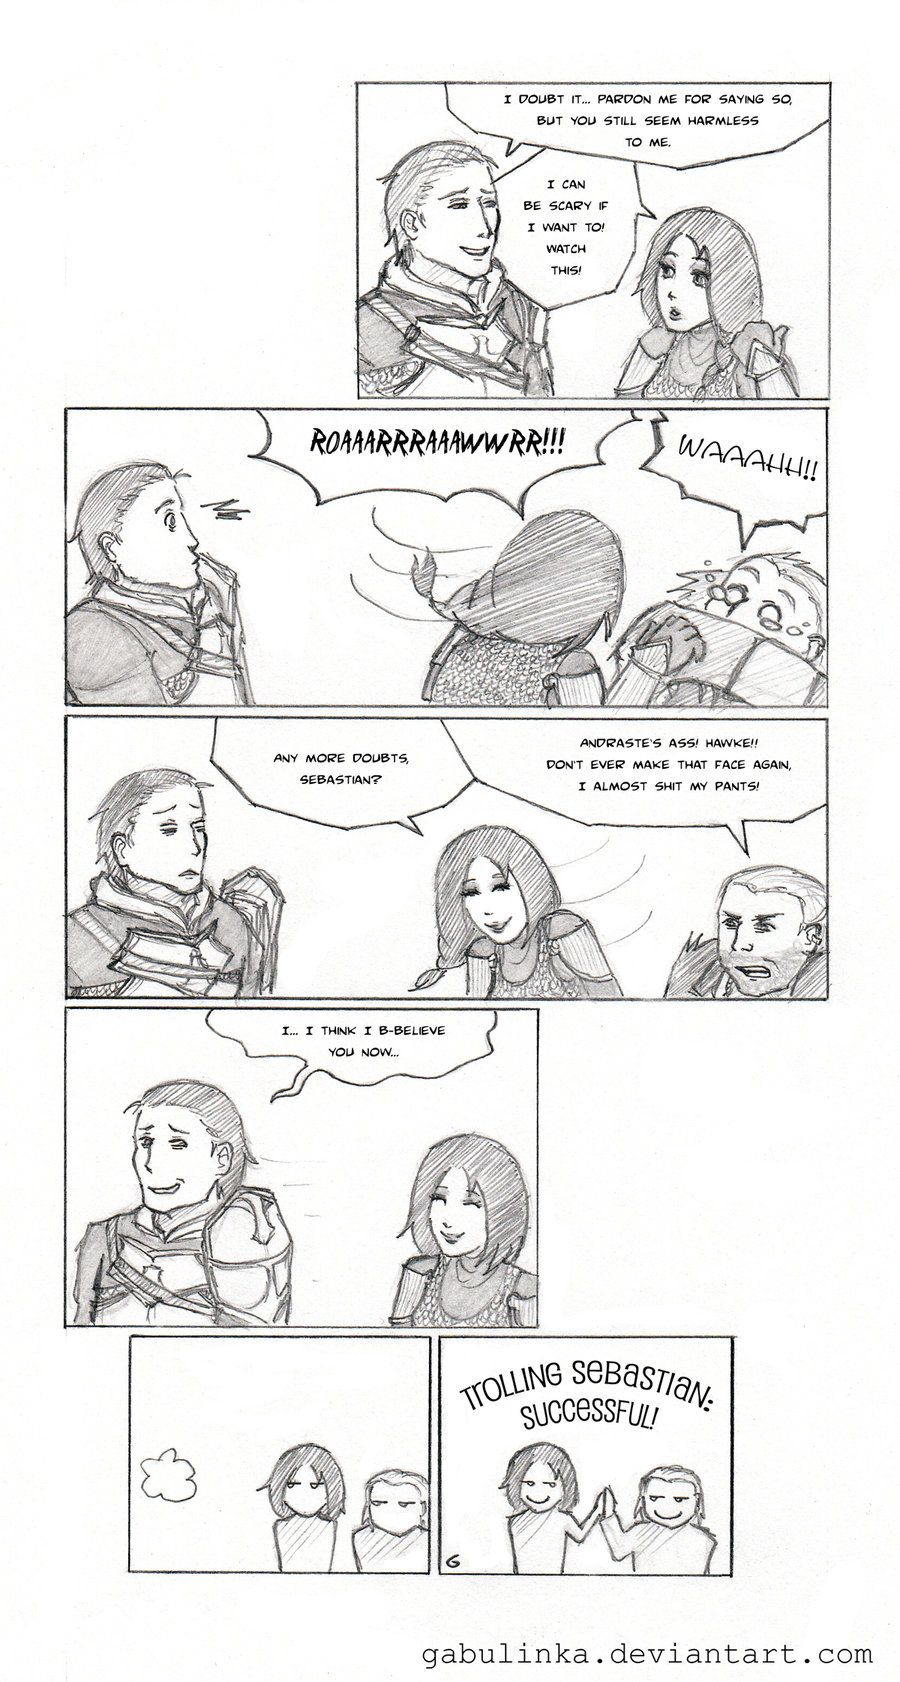 DA2: Not Scary At All by gabulinka.deviantart.com on @deviantART BFFs Varric and Hawke at it again